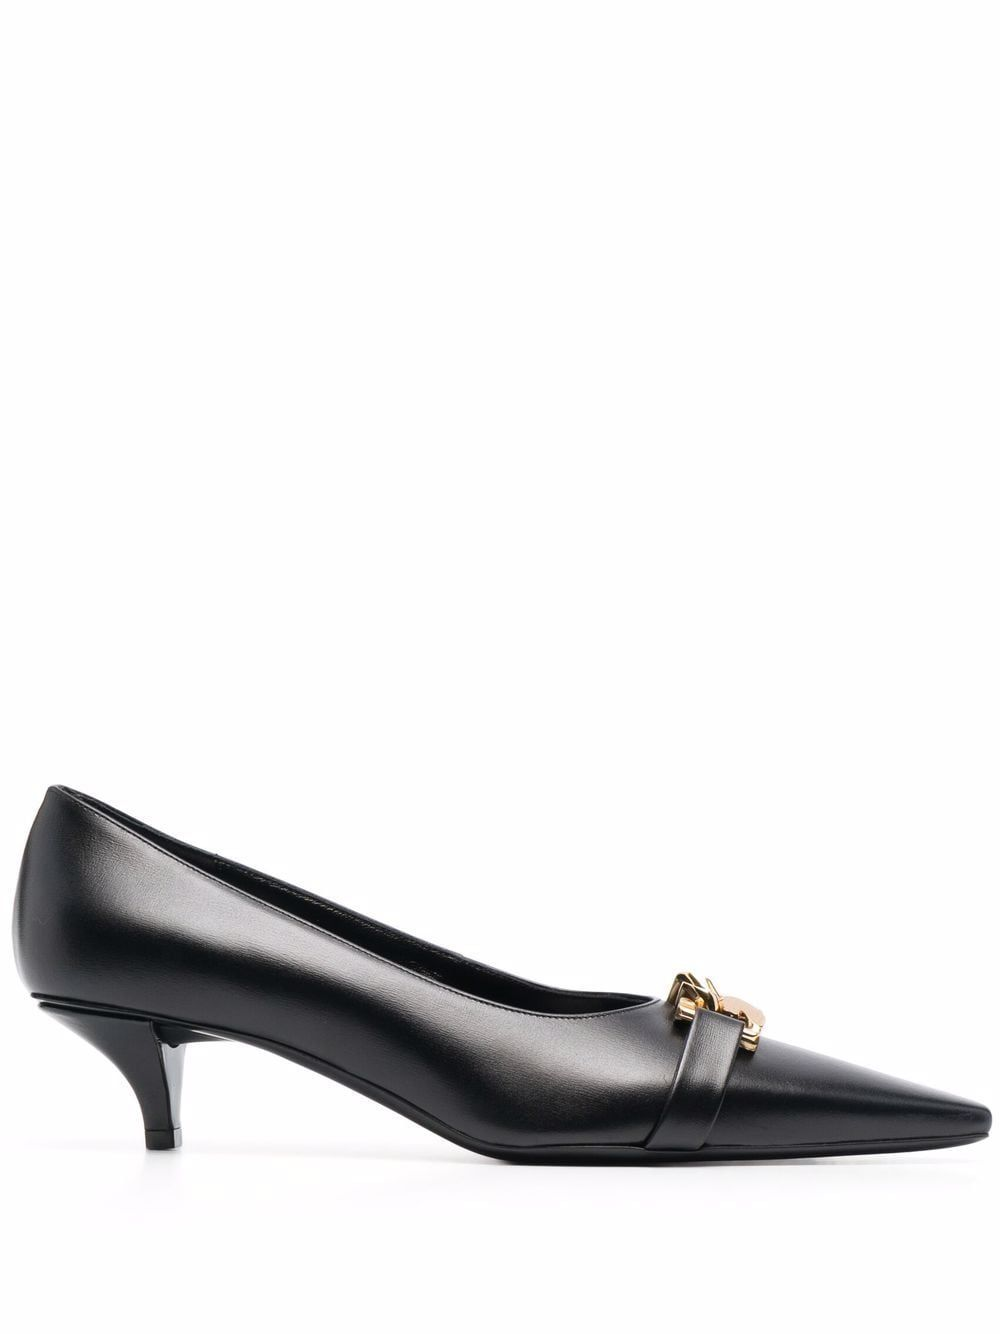 G chain leather pumps